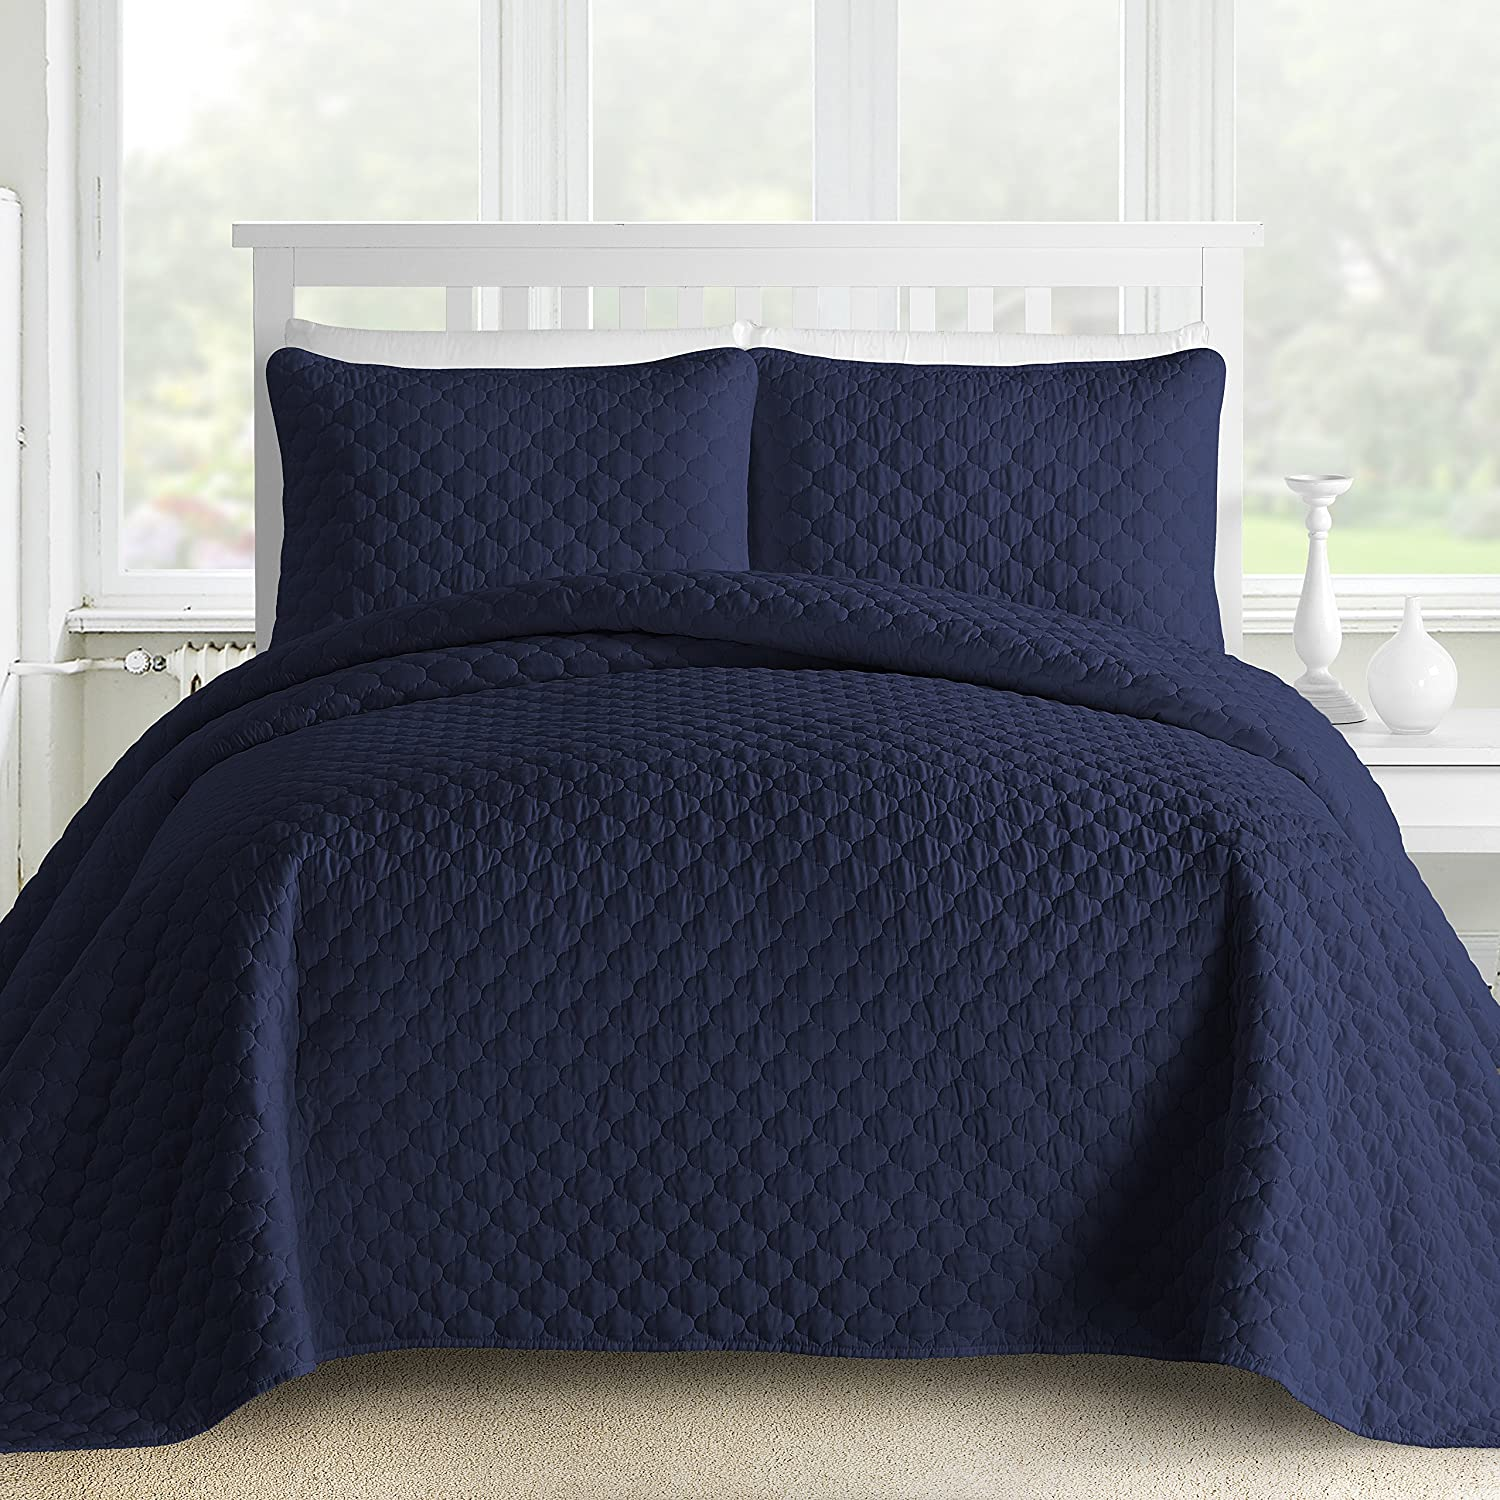 Comfy Bedding Gifted Lantern Quilted 3-piece Bedspread Coverlet Set (King/Cal King, Navy Blue